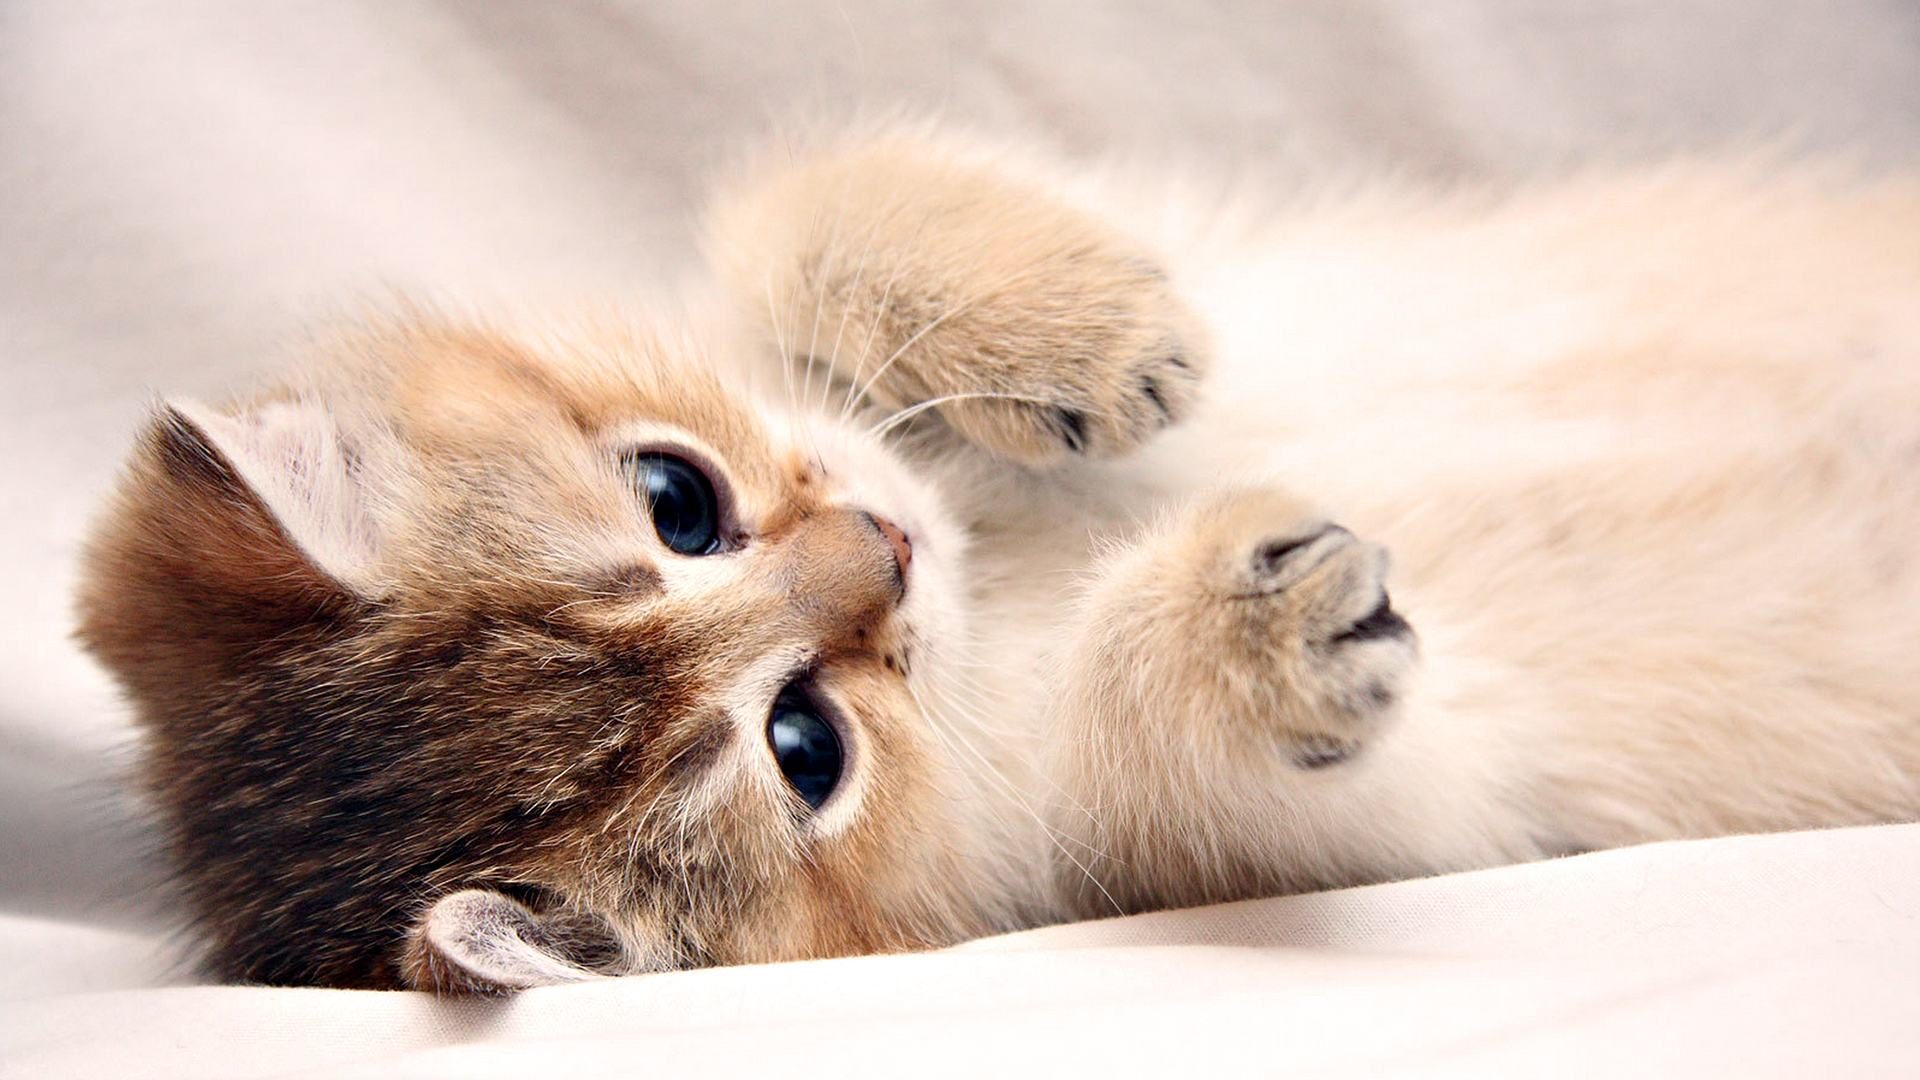 Cute Wallpapers For Laptop - Wallpaper Cave